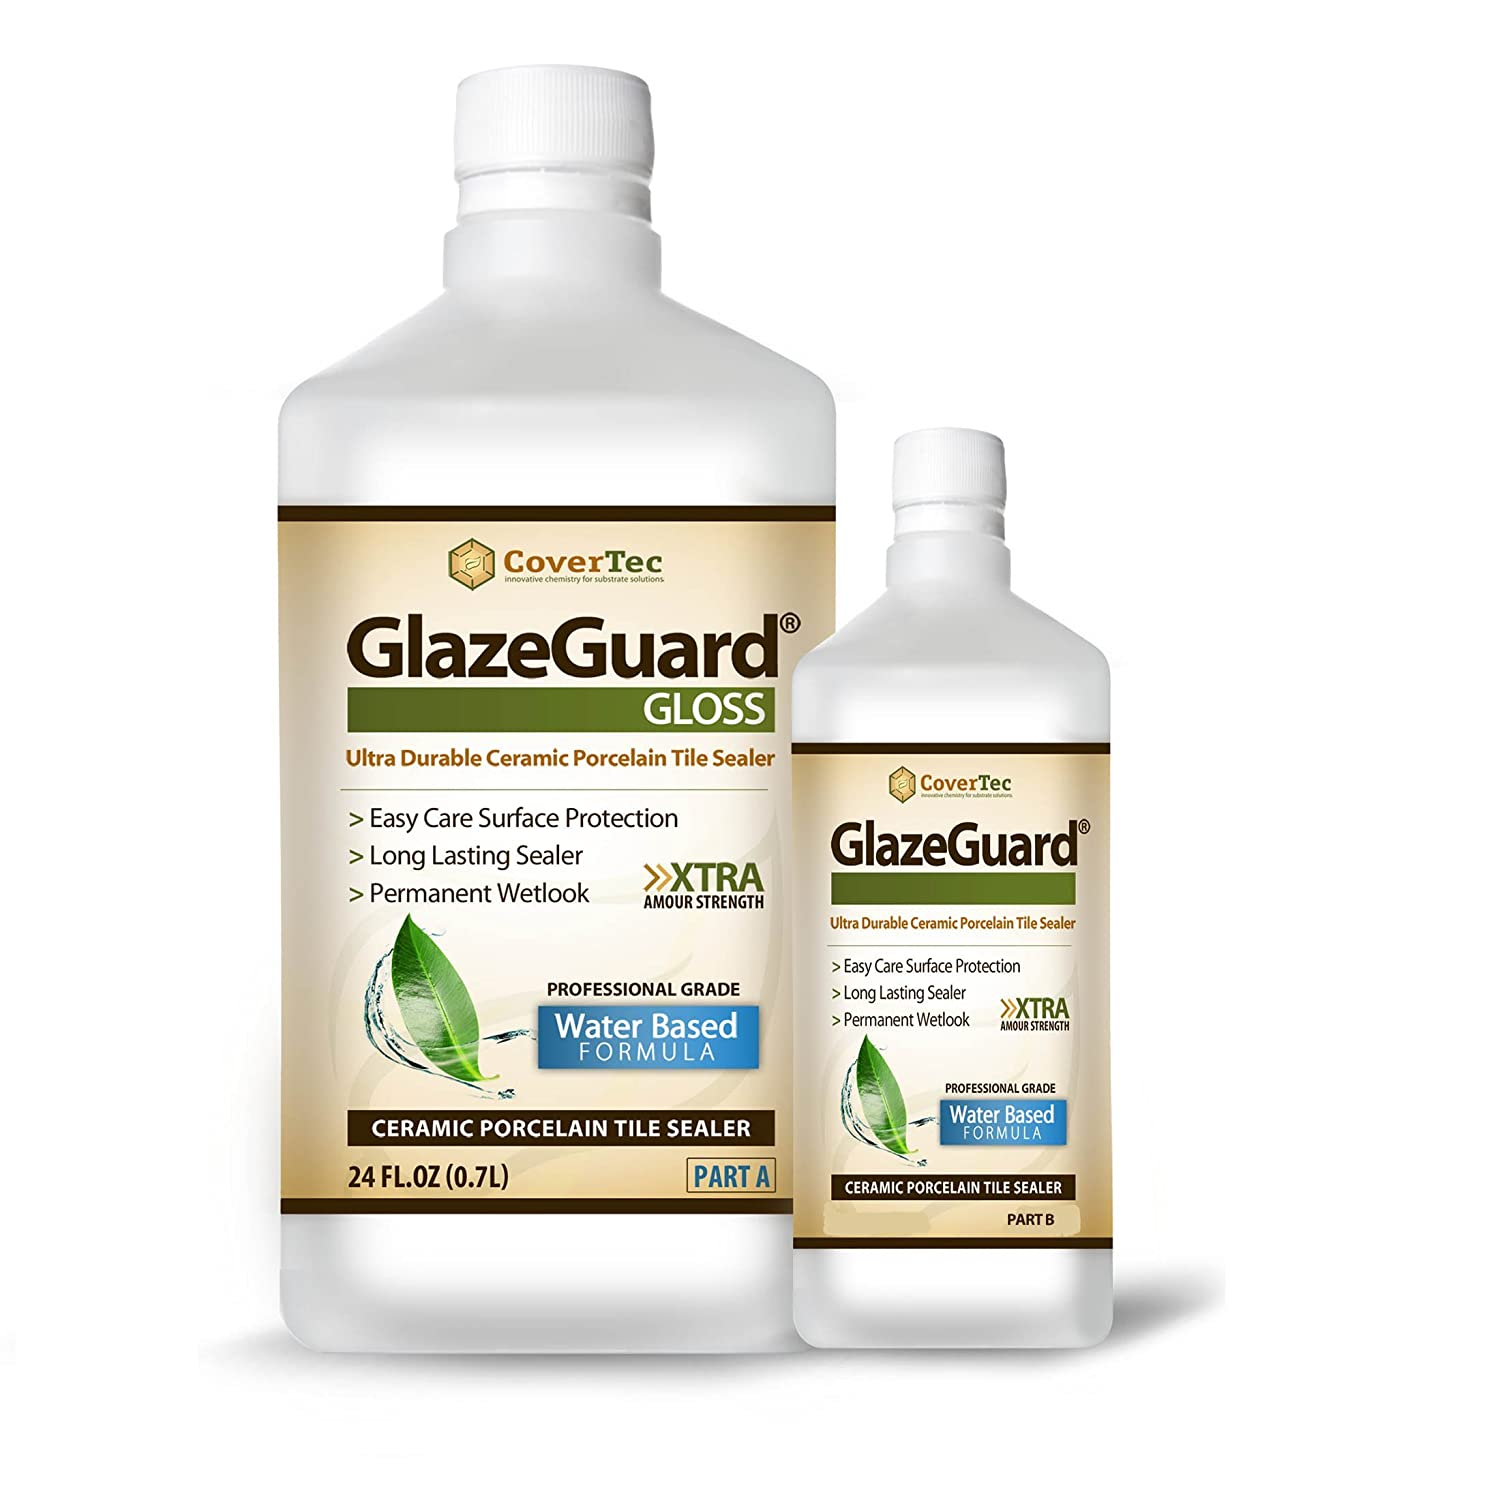 Glazeguard Gloss Floorwall Sealer For Ceramic Porcelain Stone